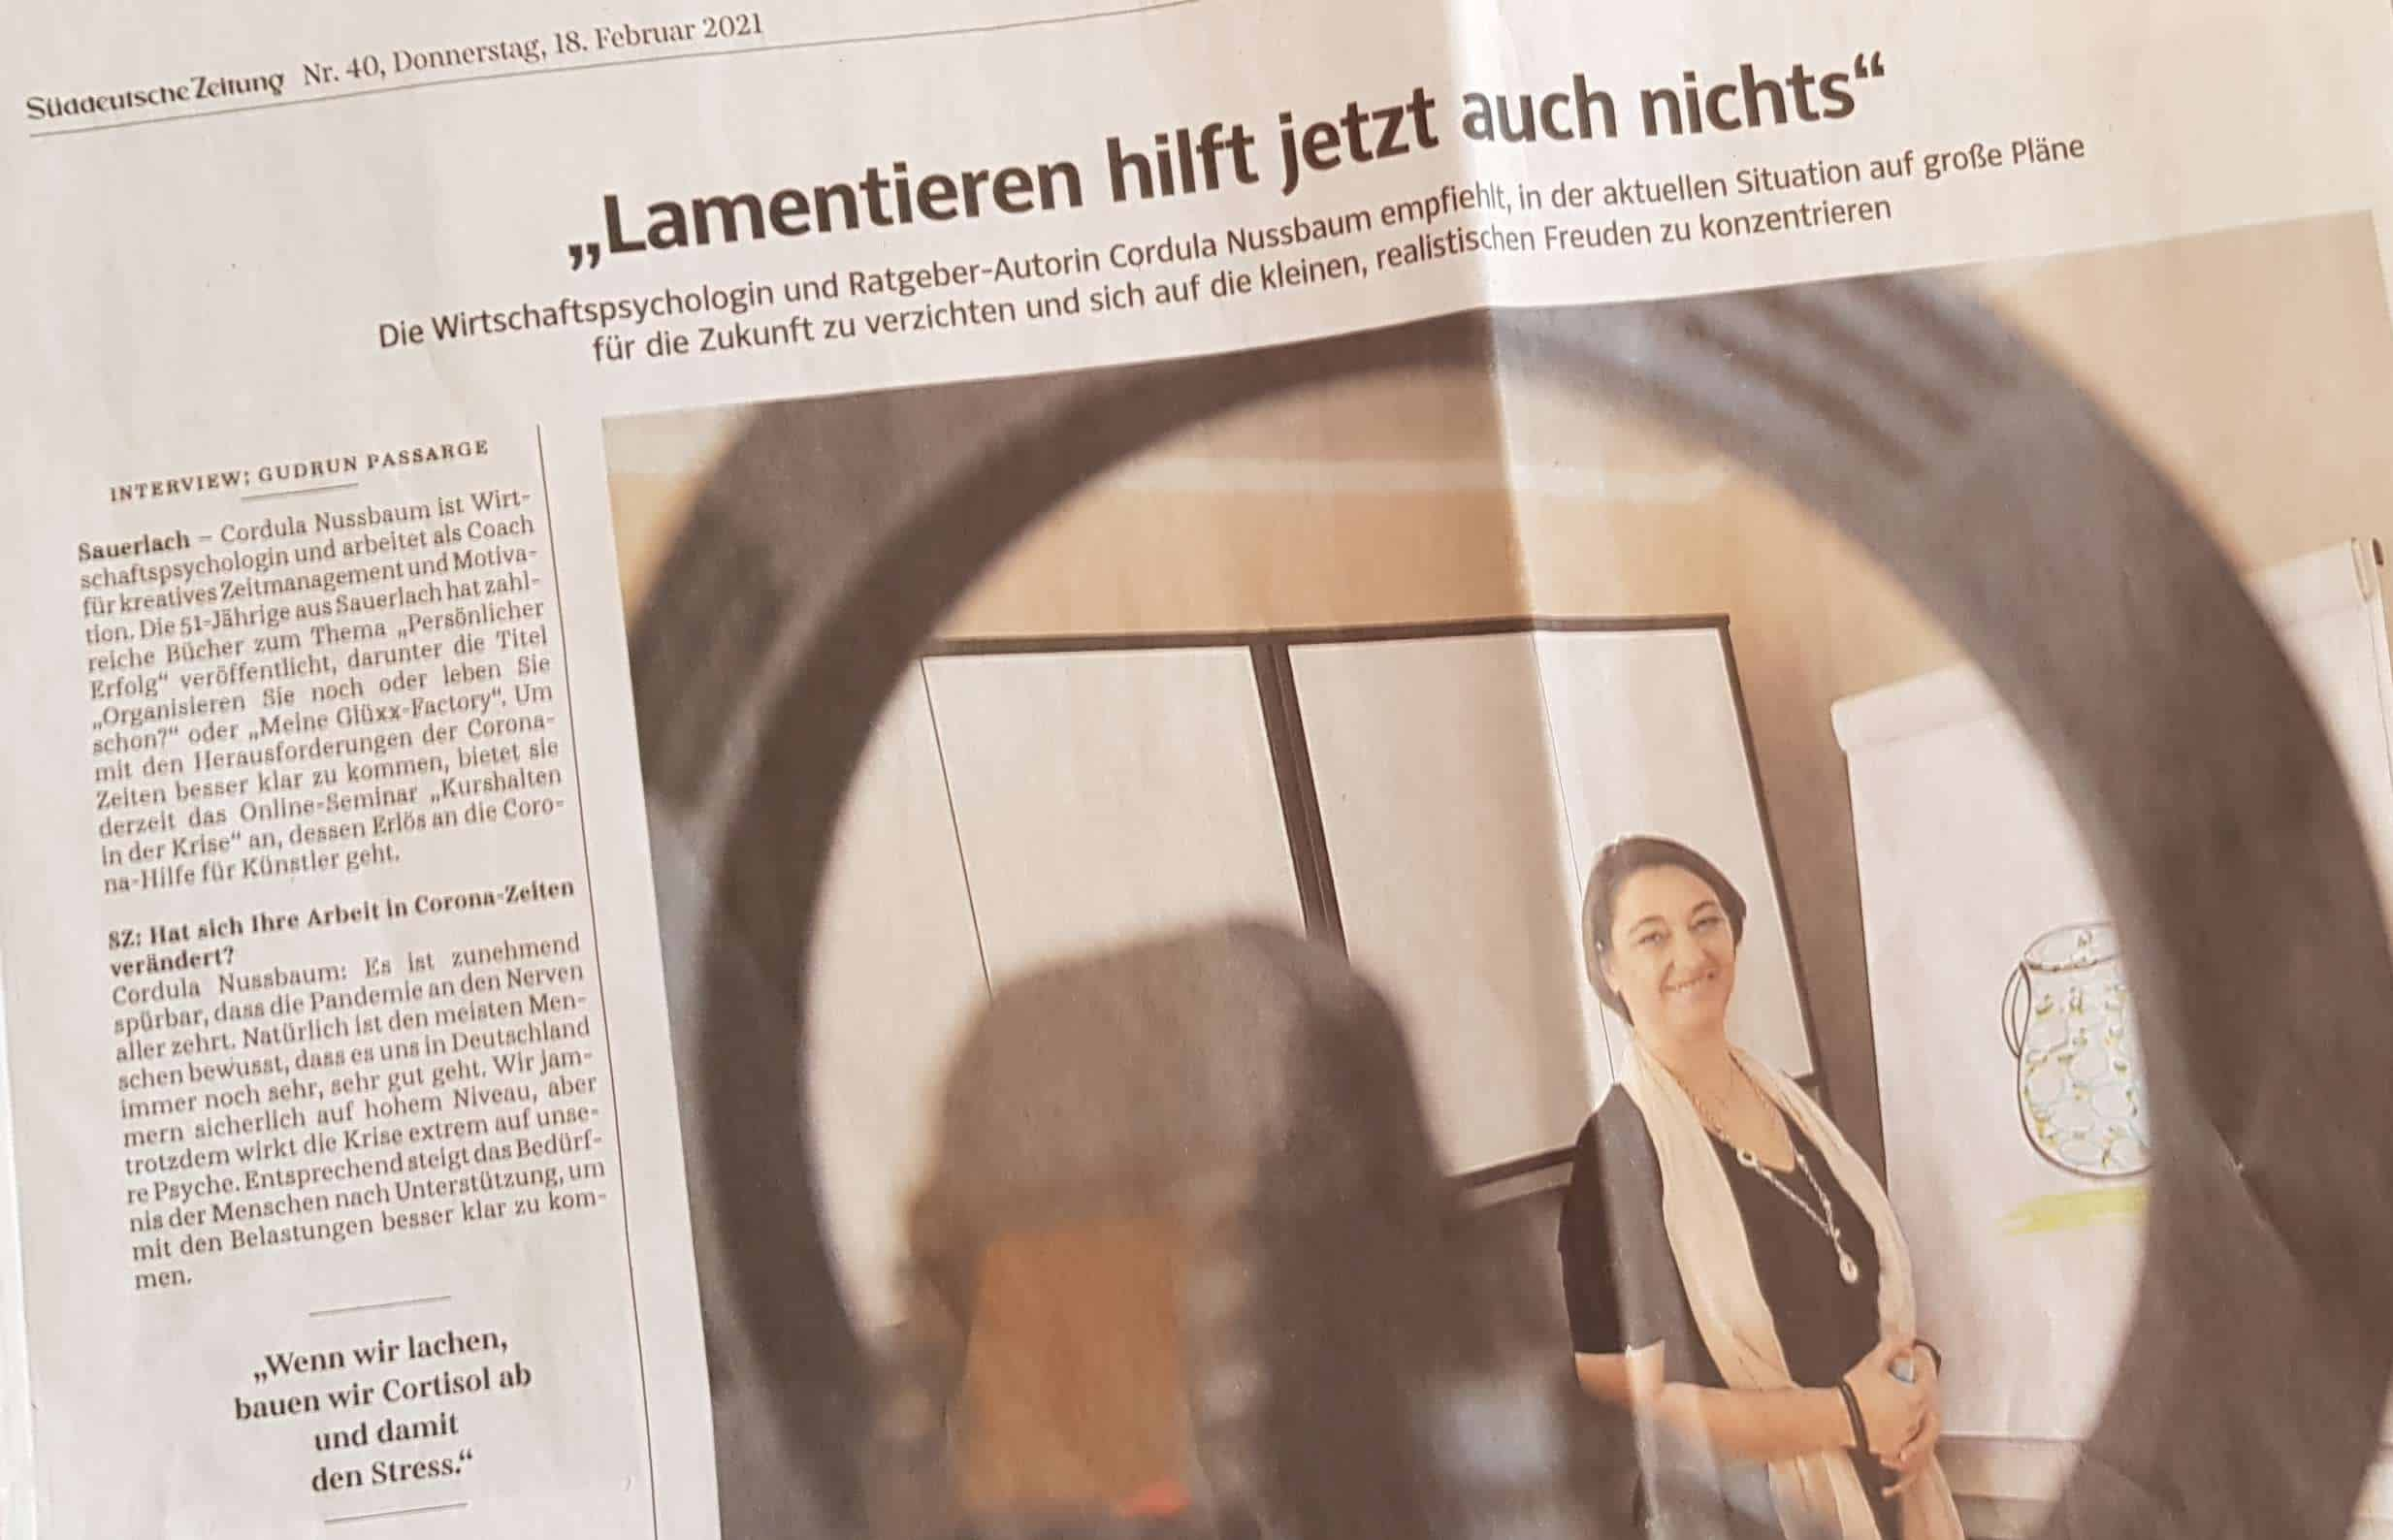 resilienz-expertin-interview-sz